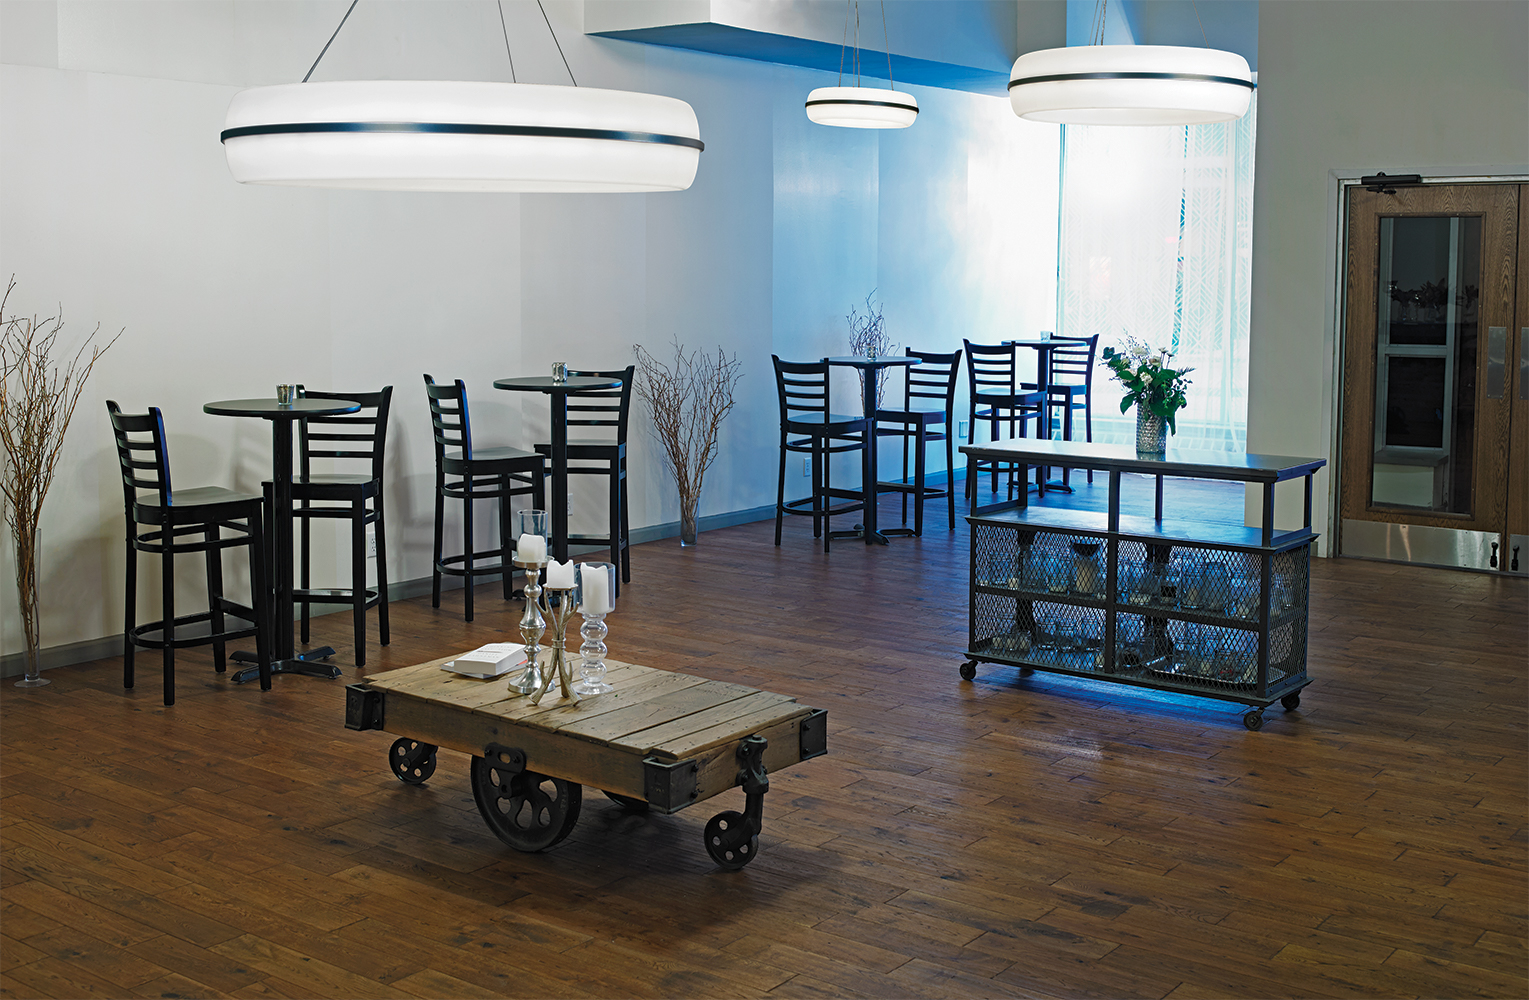 Meridian Round pendant is perfect for hospitality lighting, seen here above a small, modern café.